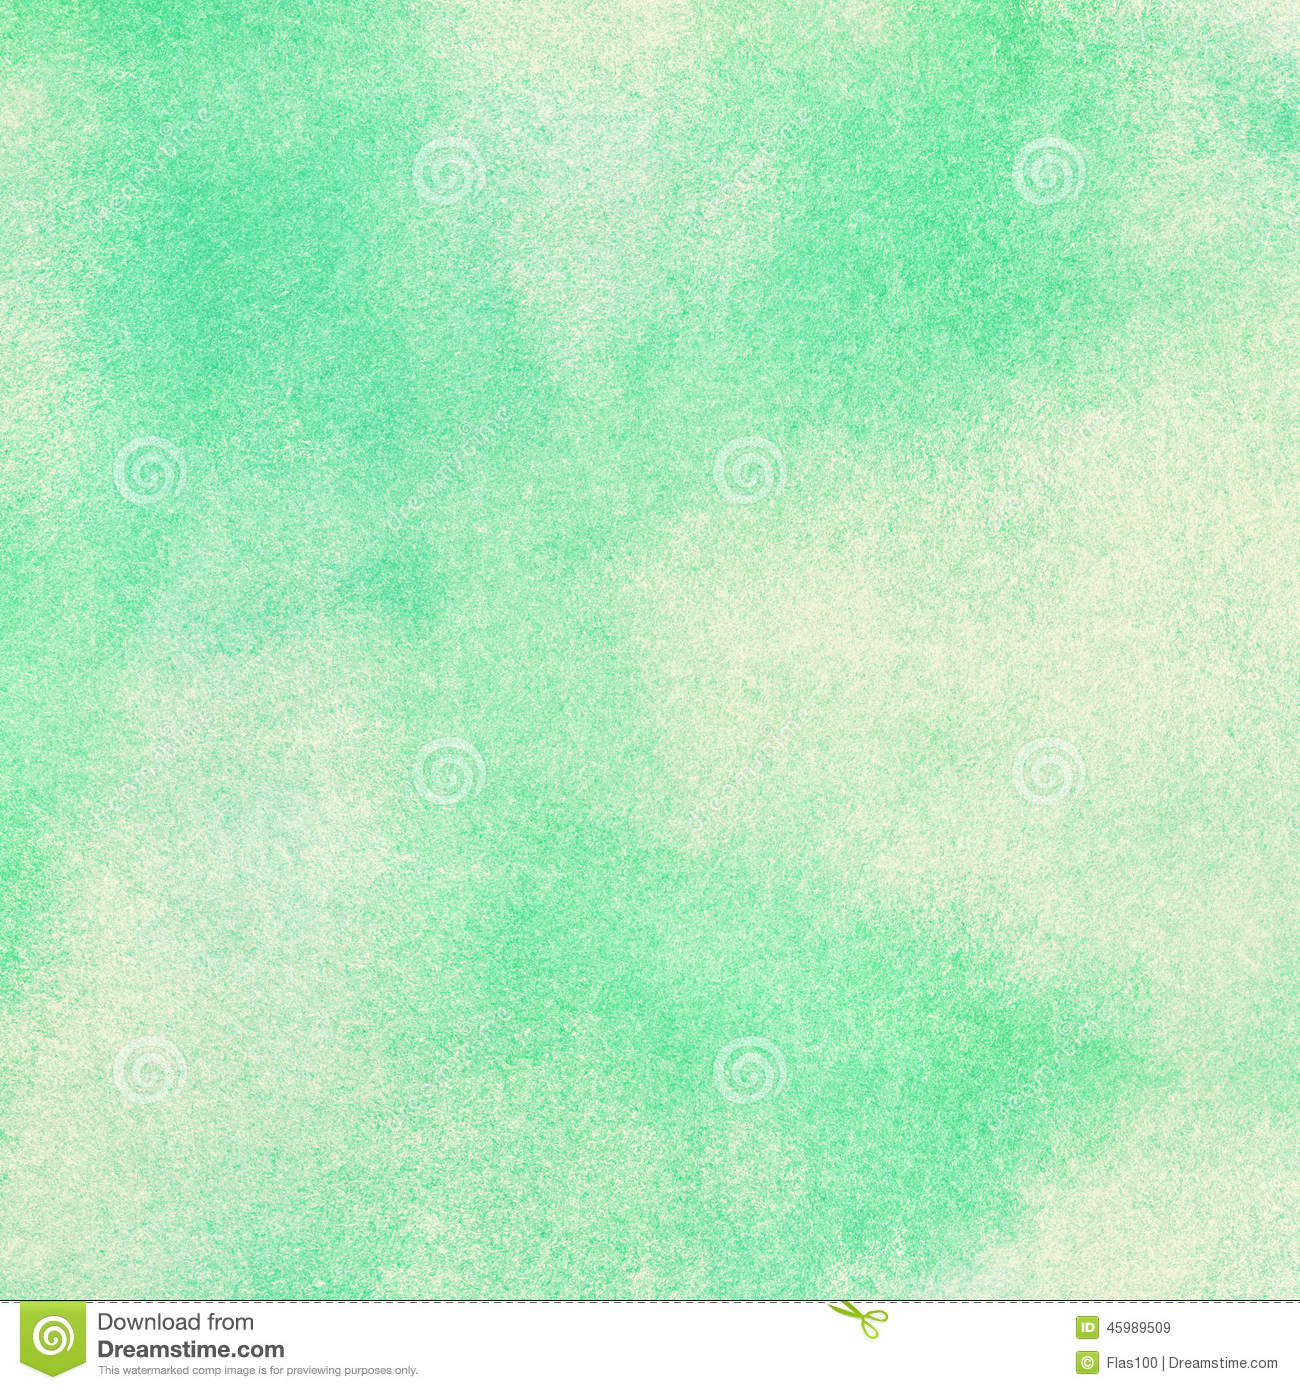 fond d 39 aquarelle de feu vert illustration stock image. Black Bedroom Furniture Sets. Home Design Ideas